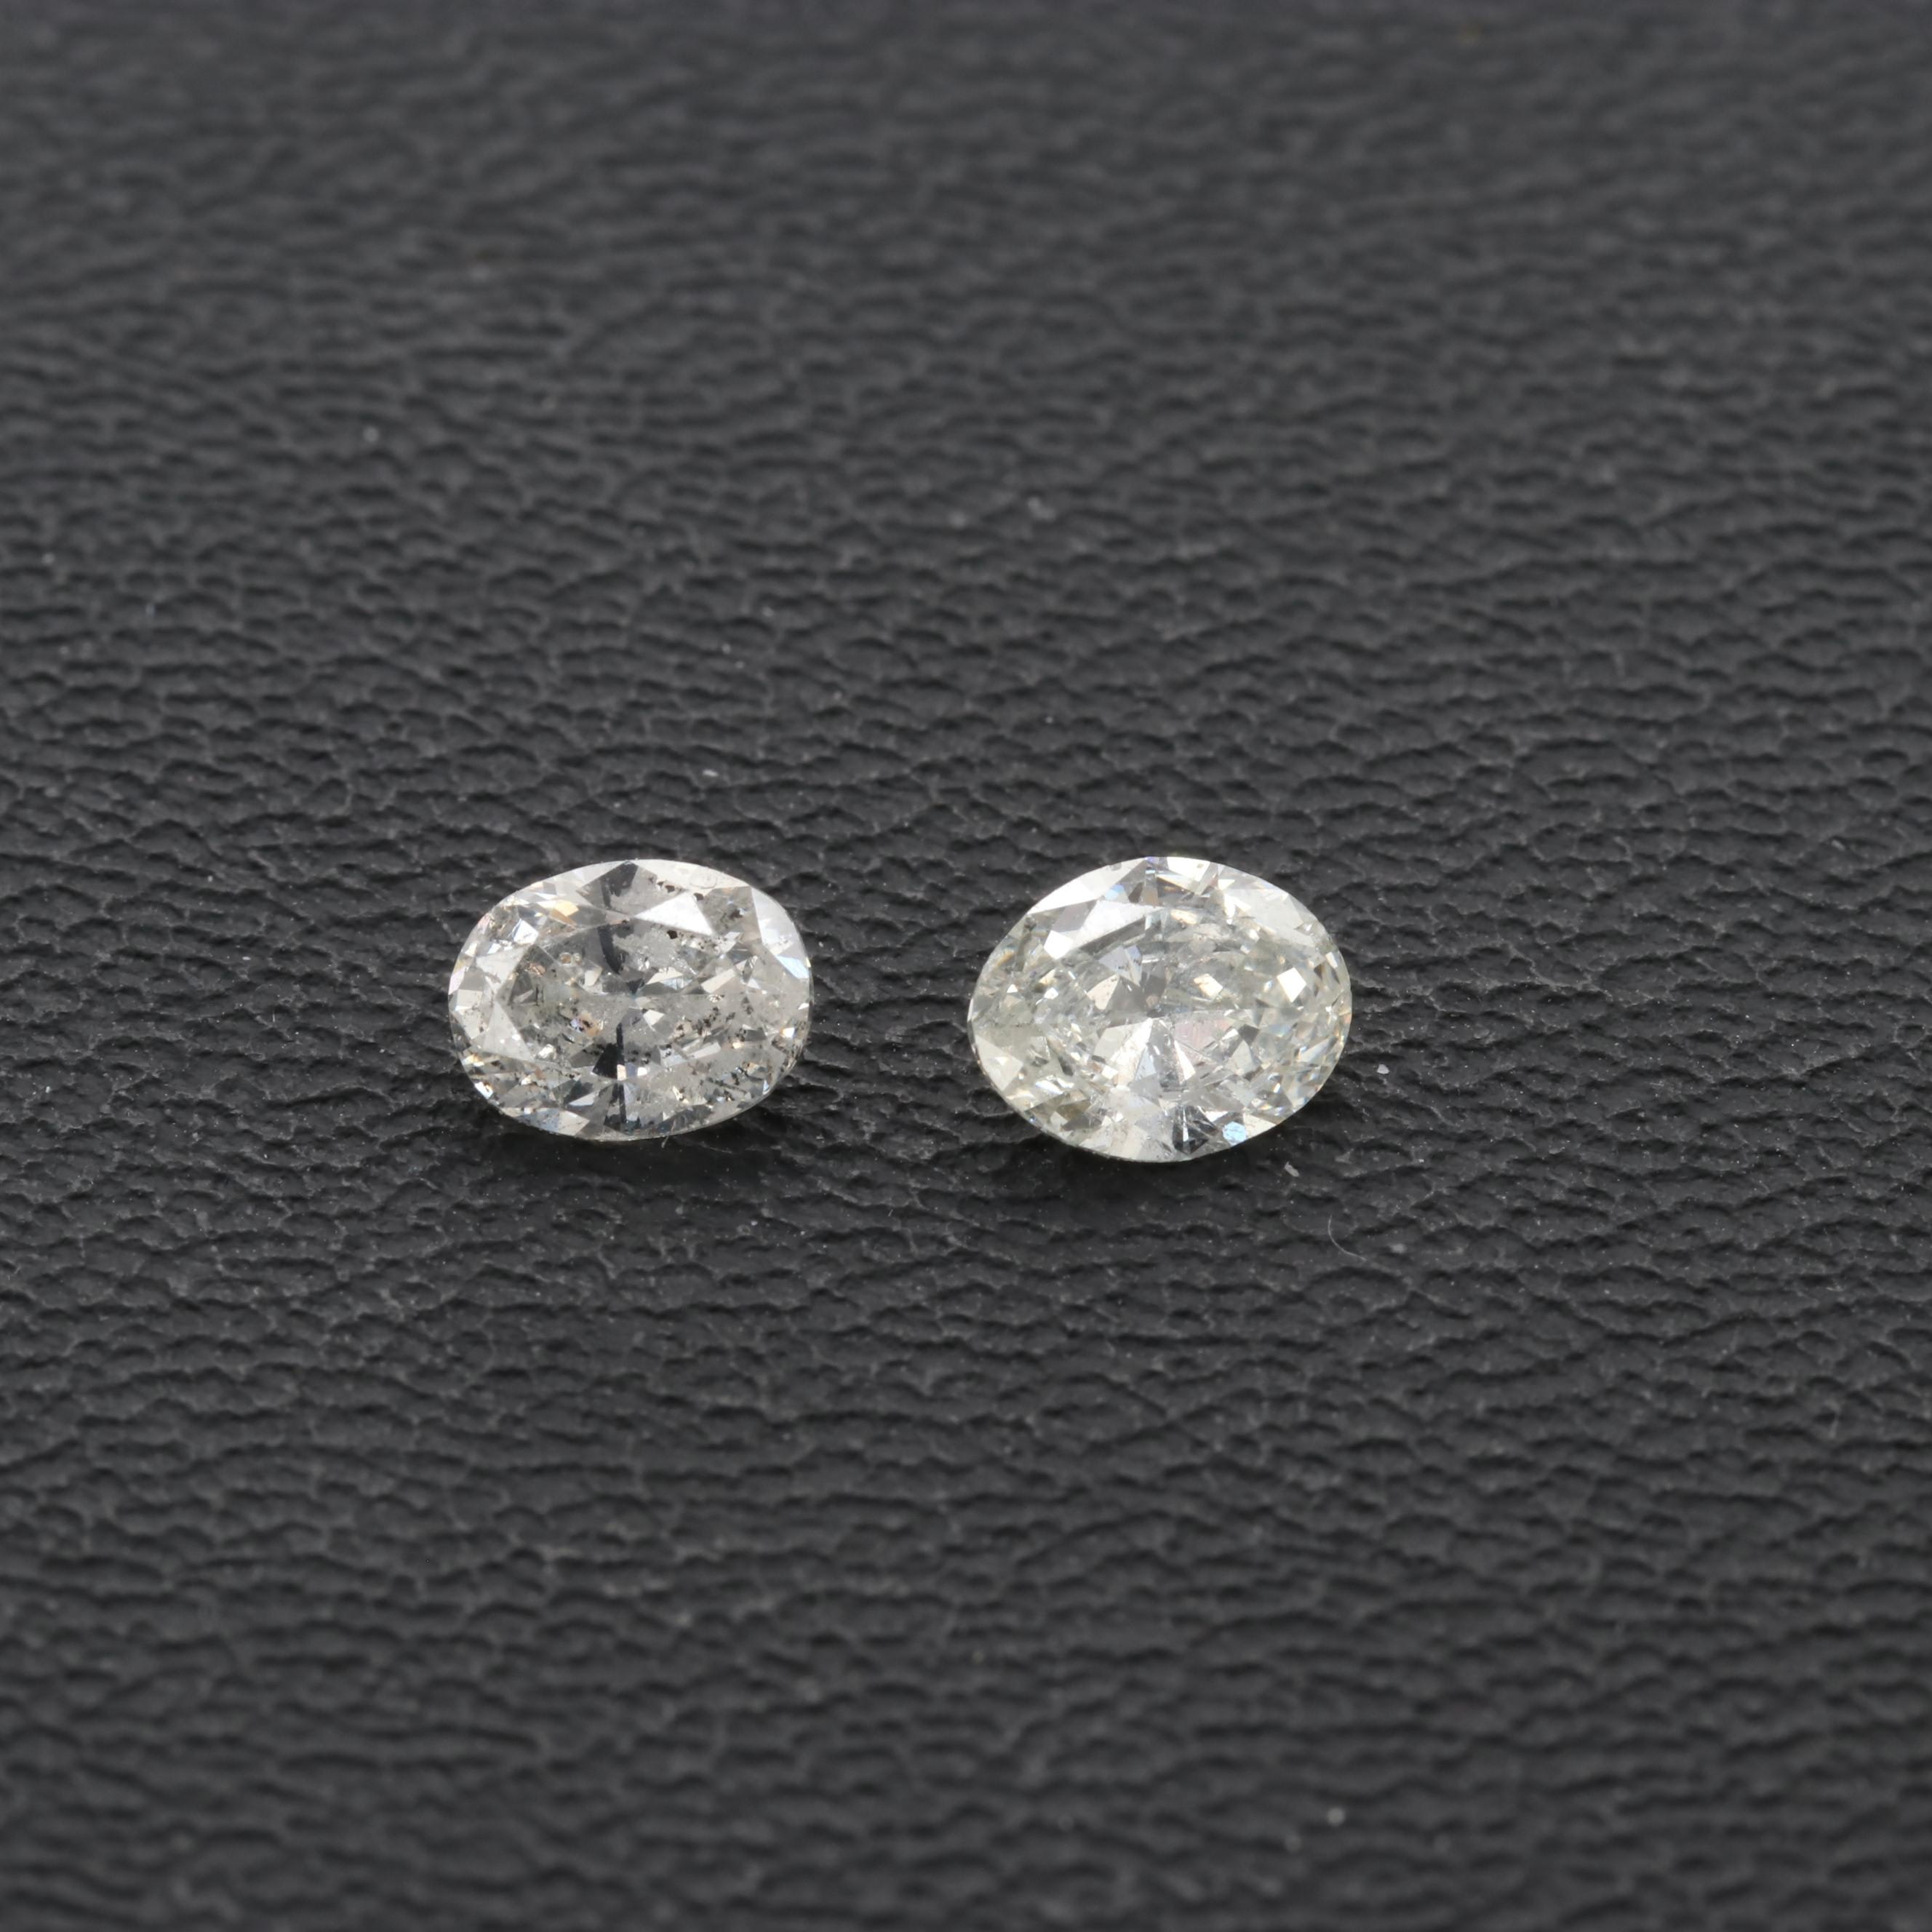 Loose Oval Faceted Diamonds